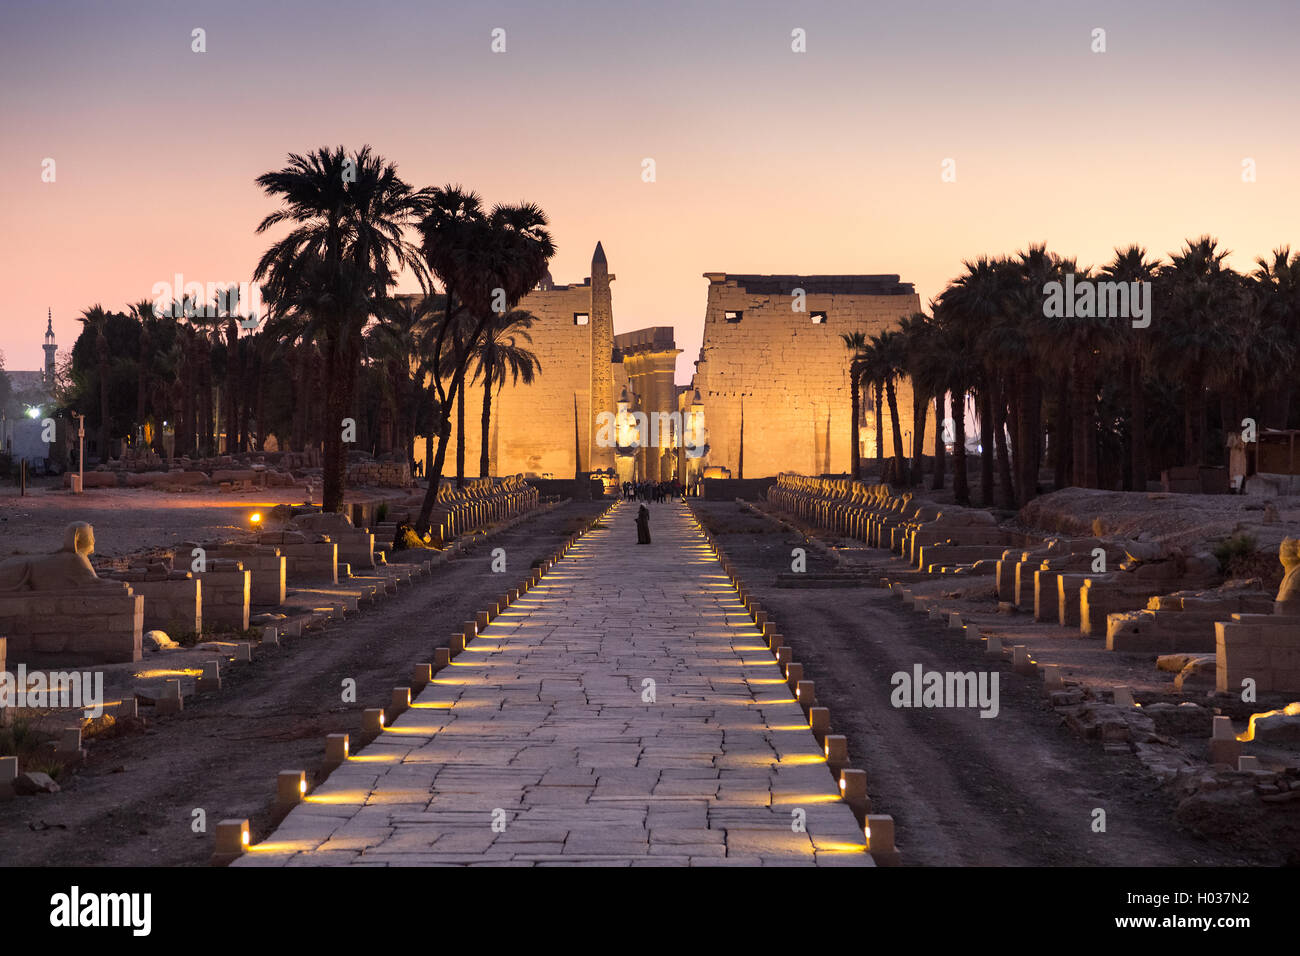 Night shot of Avenue of Sphinxes at Luxor temple. - Stock Image